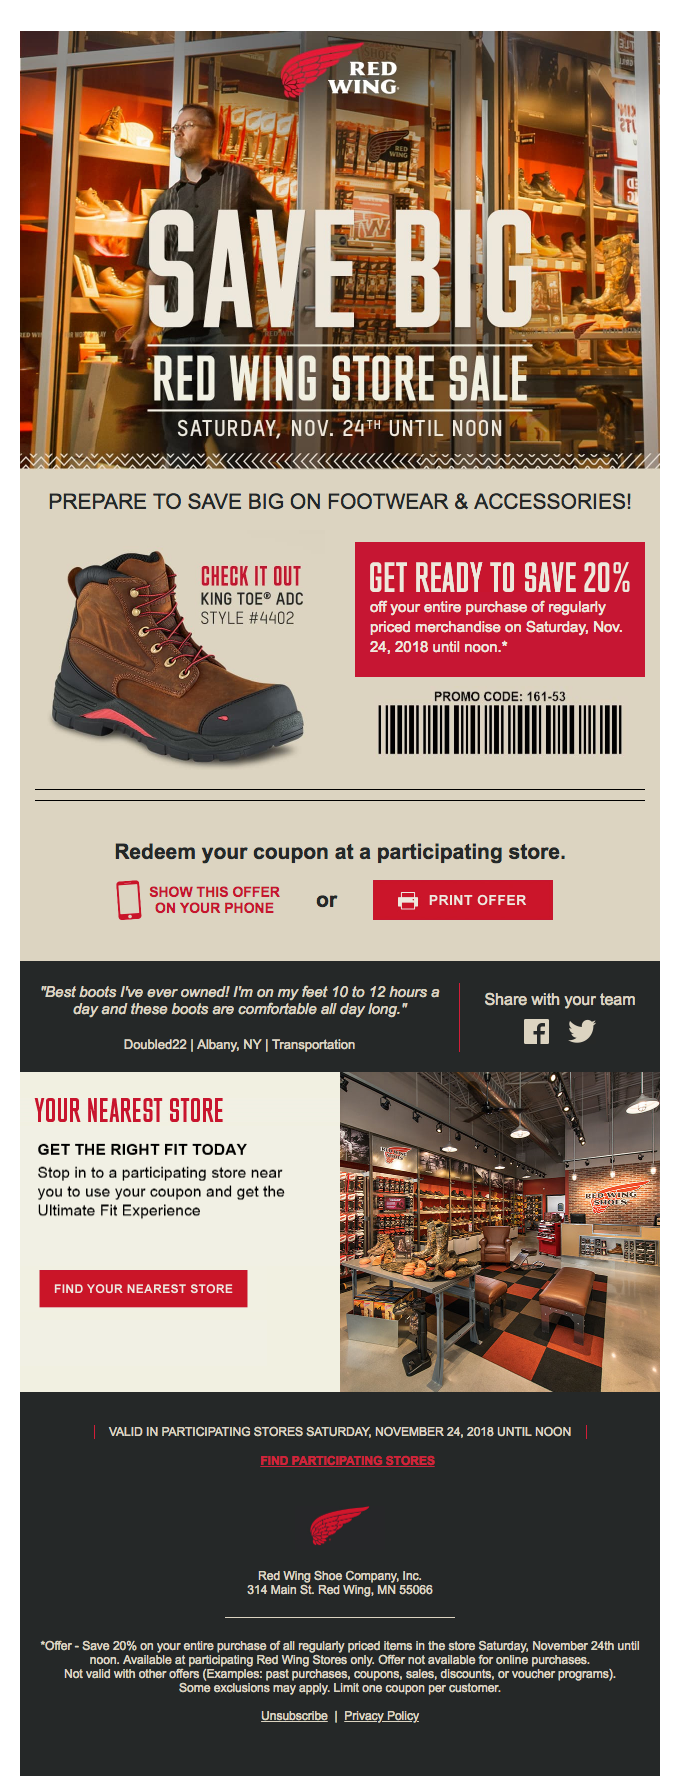 Coupon Emails | Really Good Emails